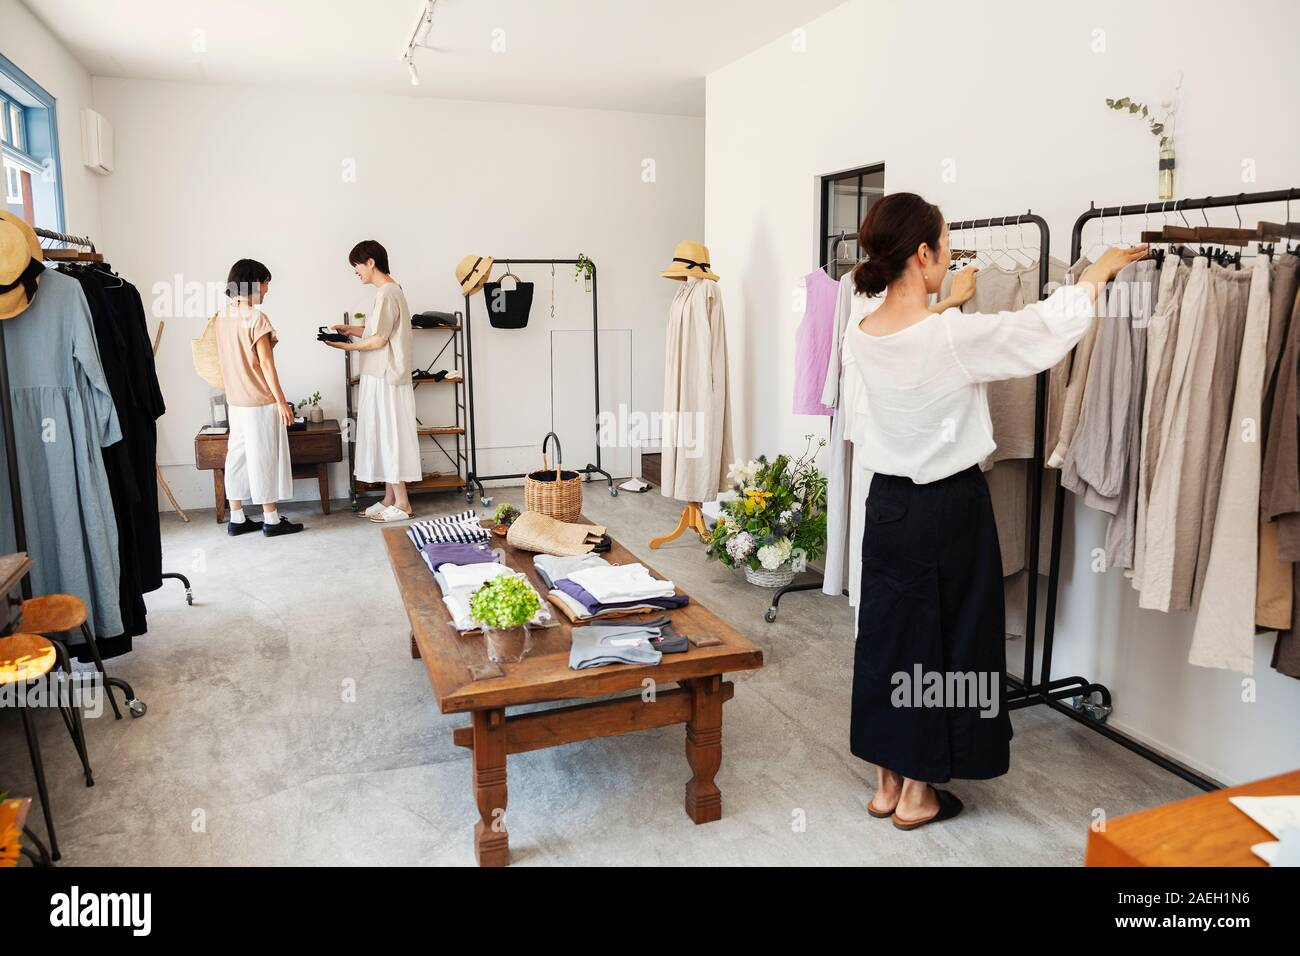 Three Japanese Women Standing In A Small Fashion Boutique Looking At Clothing On Rails Stock Photo Alamy